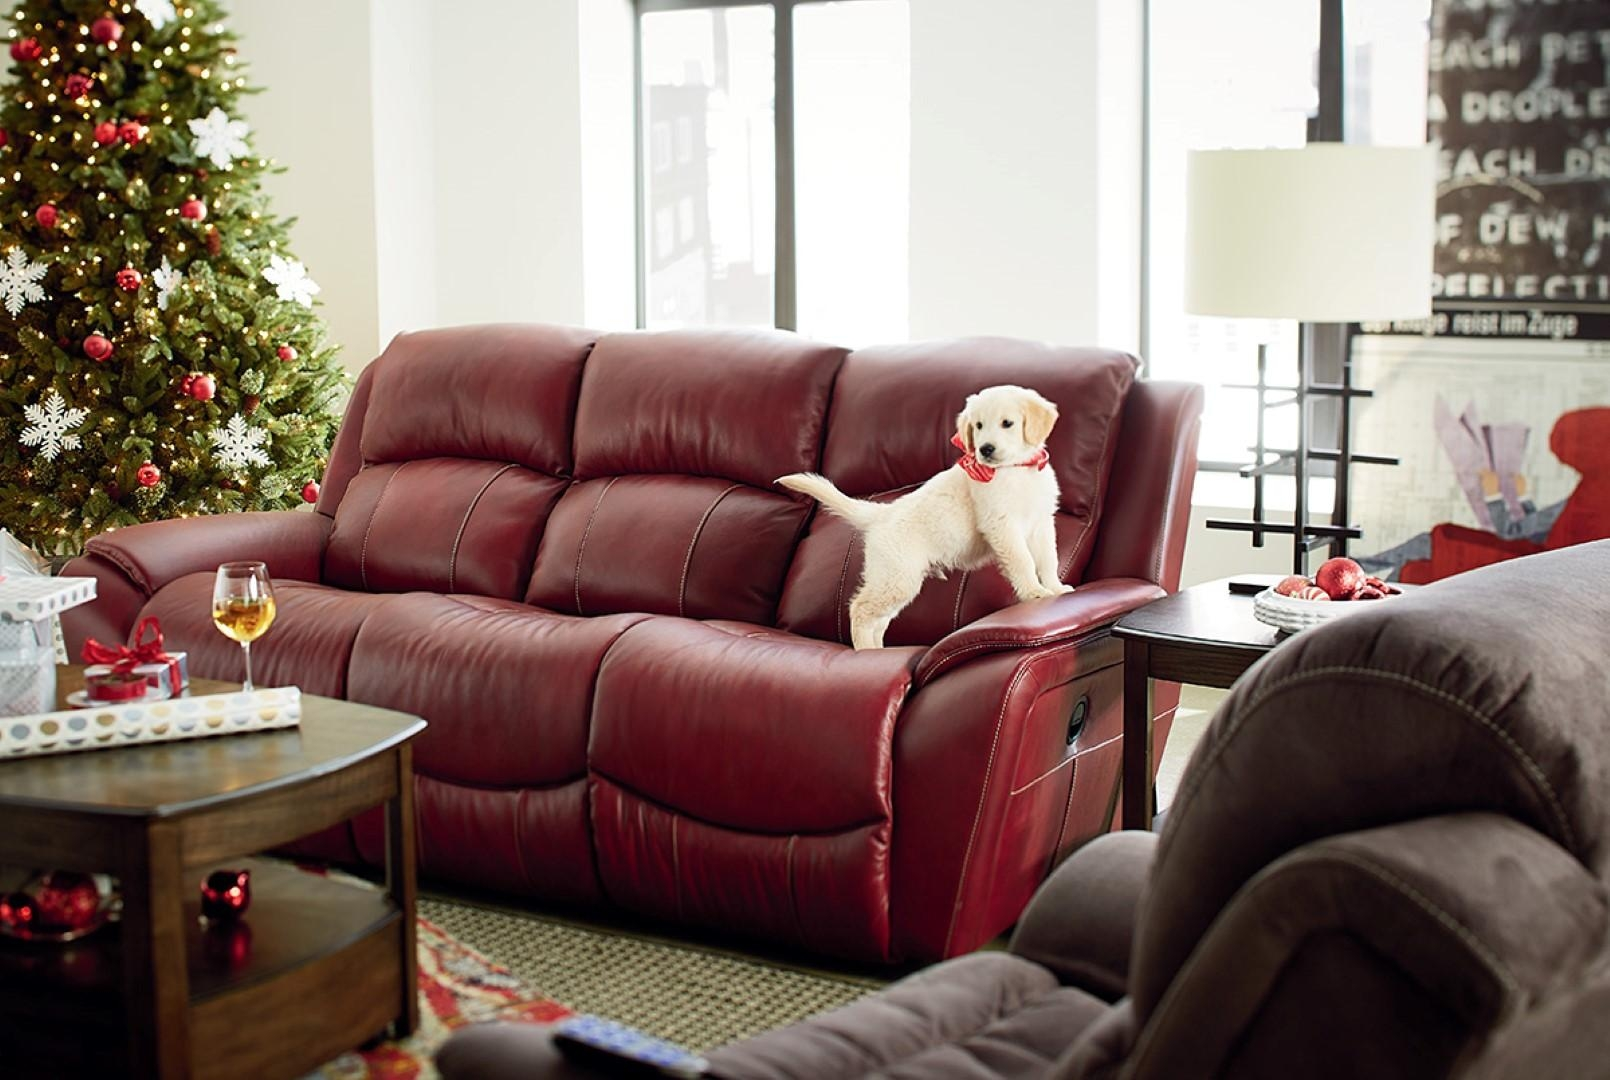 La Z Boy Barrett Reclining Sofa – Town & Country Furniture For Lazy Boy Sofas And Chairs (Image 6 of 20)